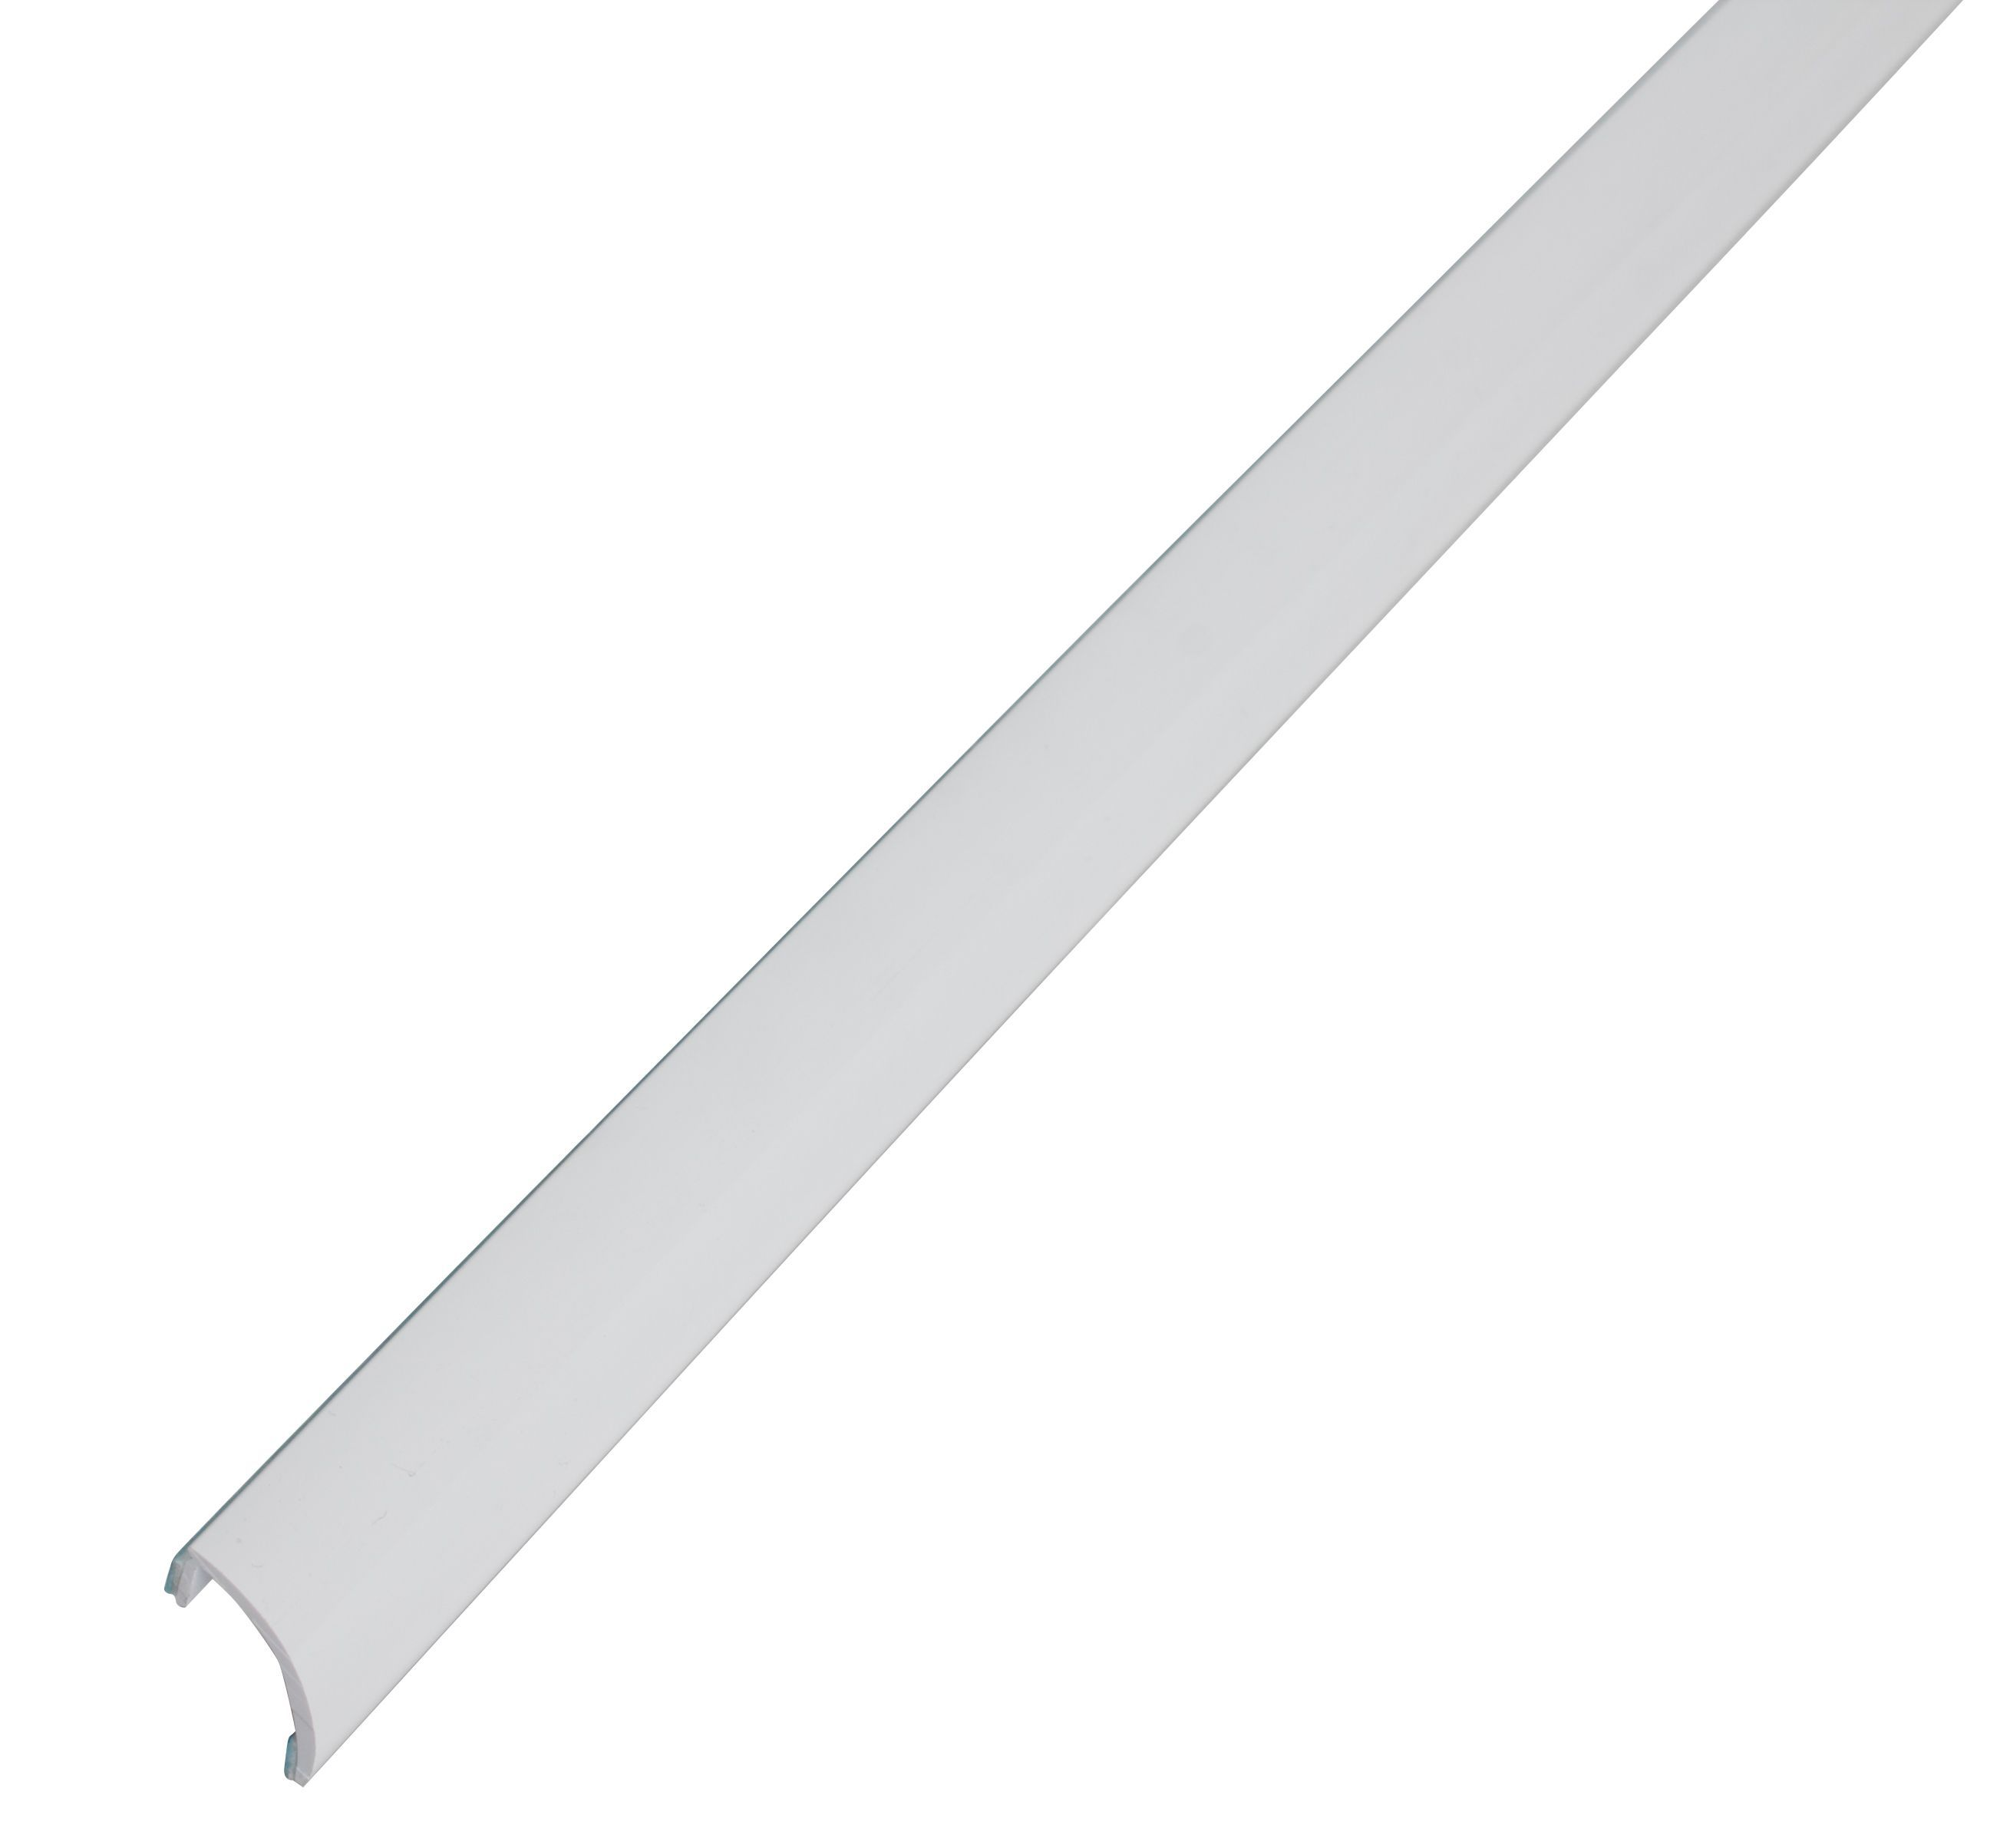 Diall white pvc self adhesive curved bath seal trim B q bathroom design service